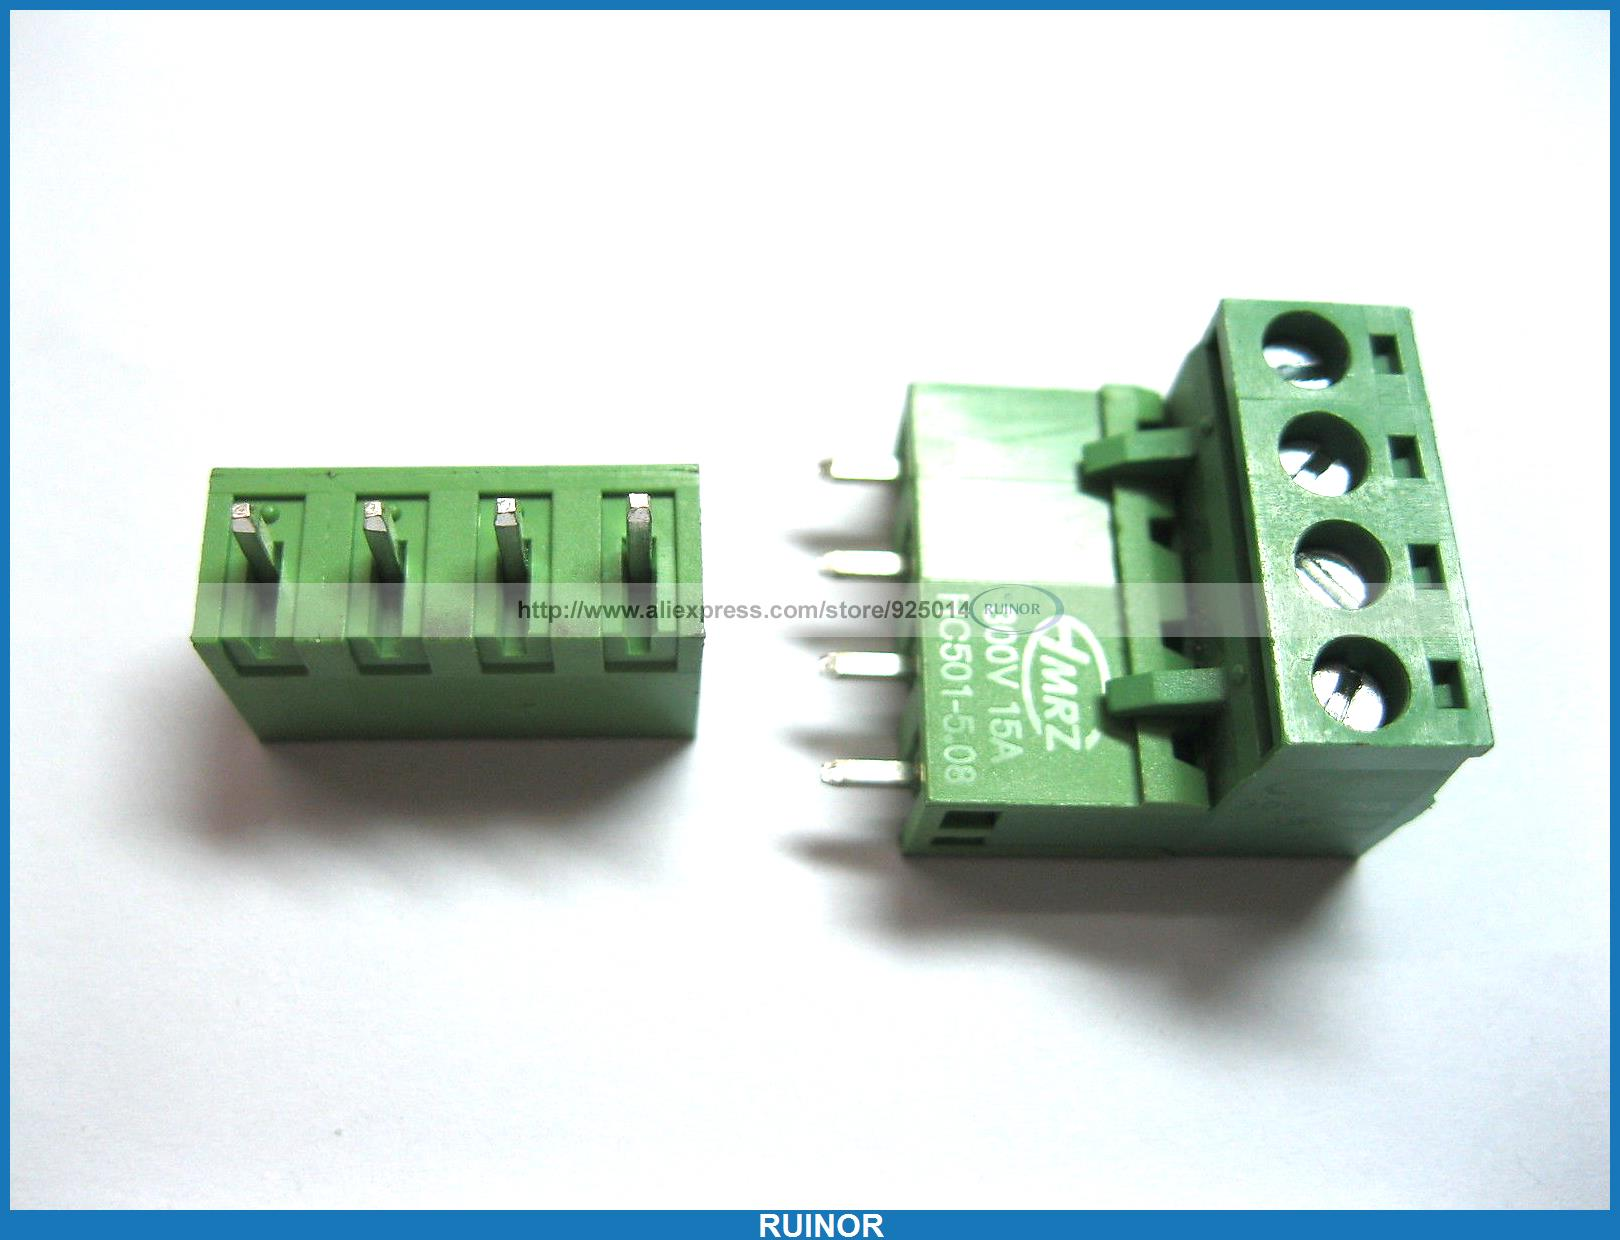 50 Pcs 5 08mm Straight 4 Pin Screw Terminal Block Connector Pluggable Type Green 1800781[pluggable terminal blocks 12 pos 5 08mm pitch throug mr li